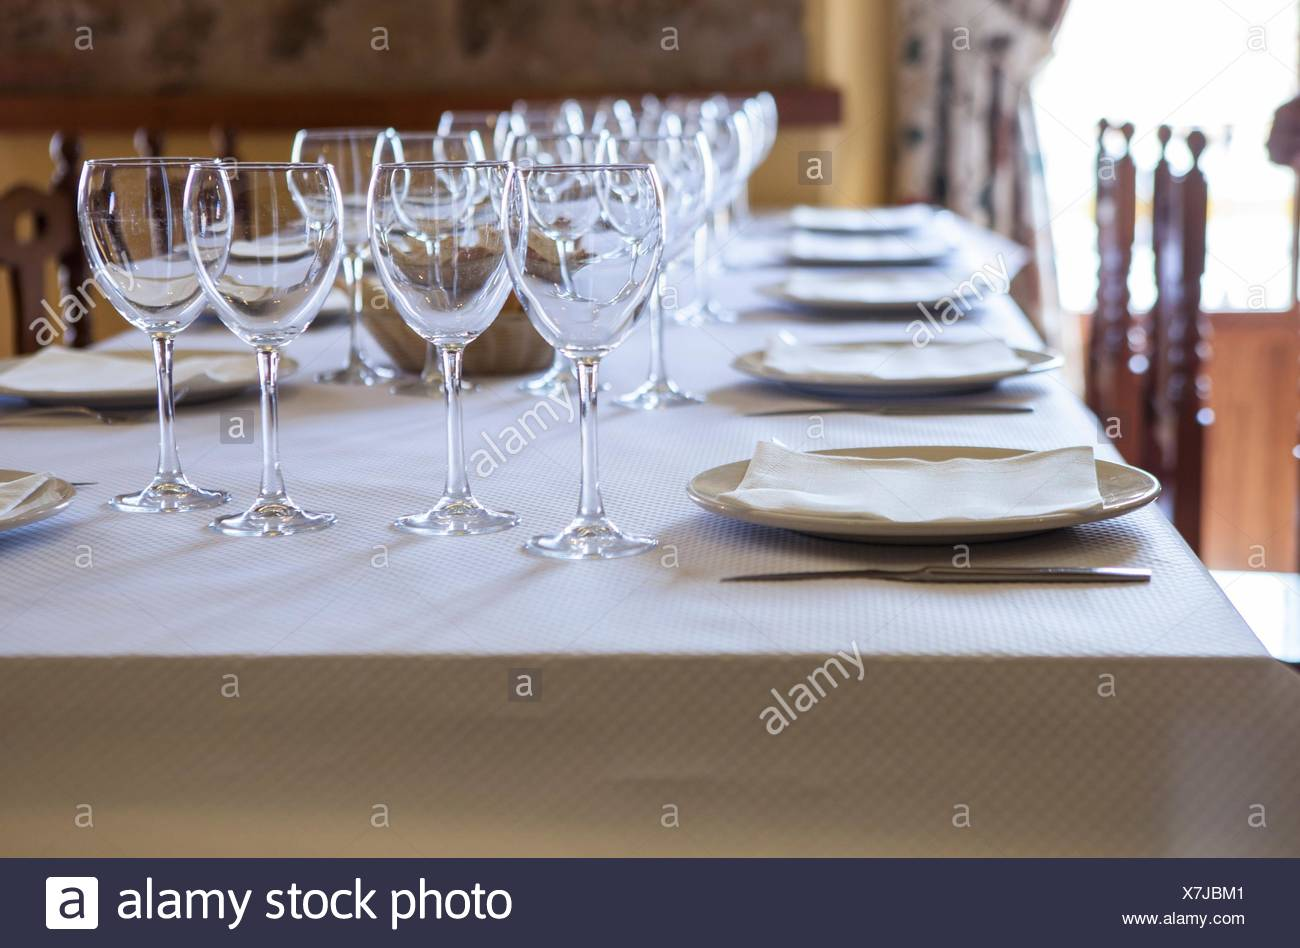 Tables ready and waiting for the guests to arrive at a rustic restaurant. - Stock Image